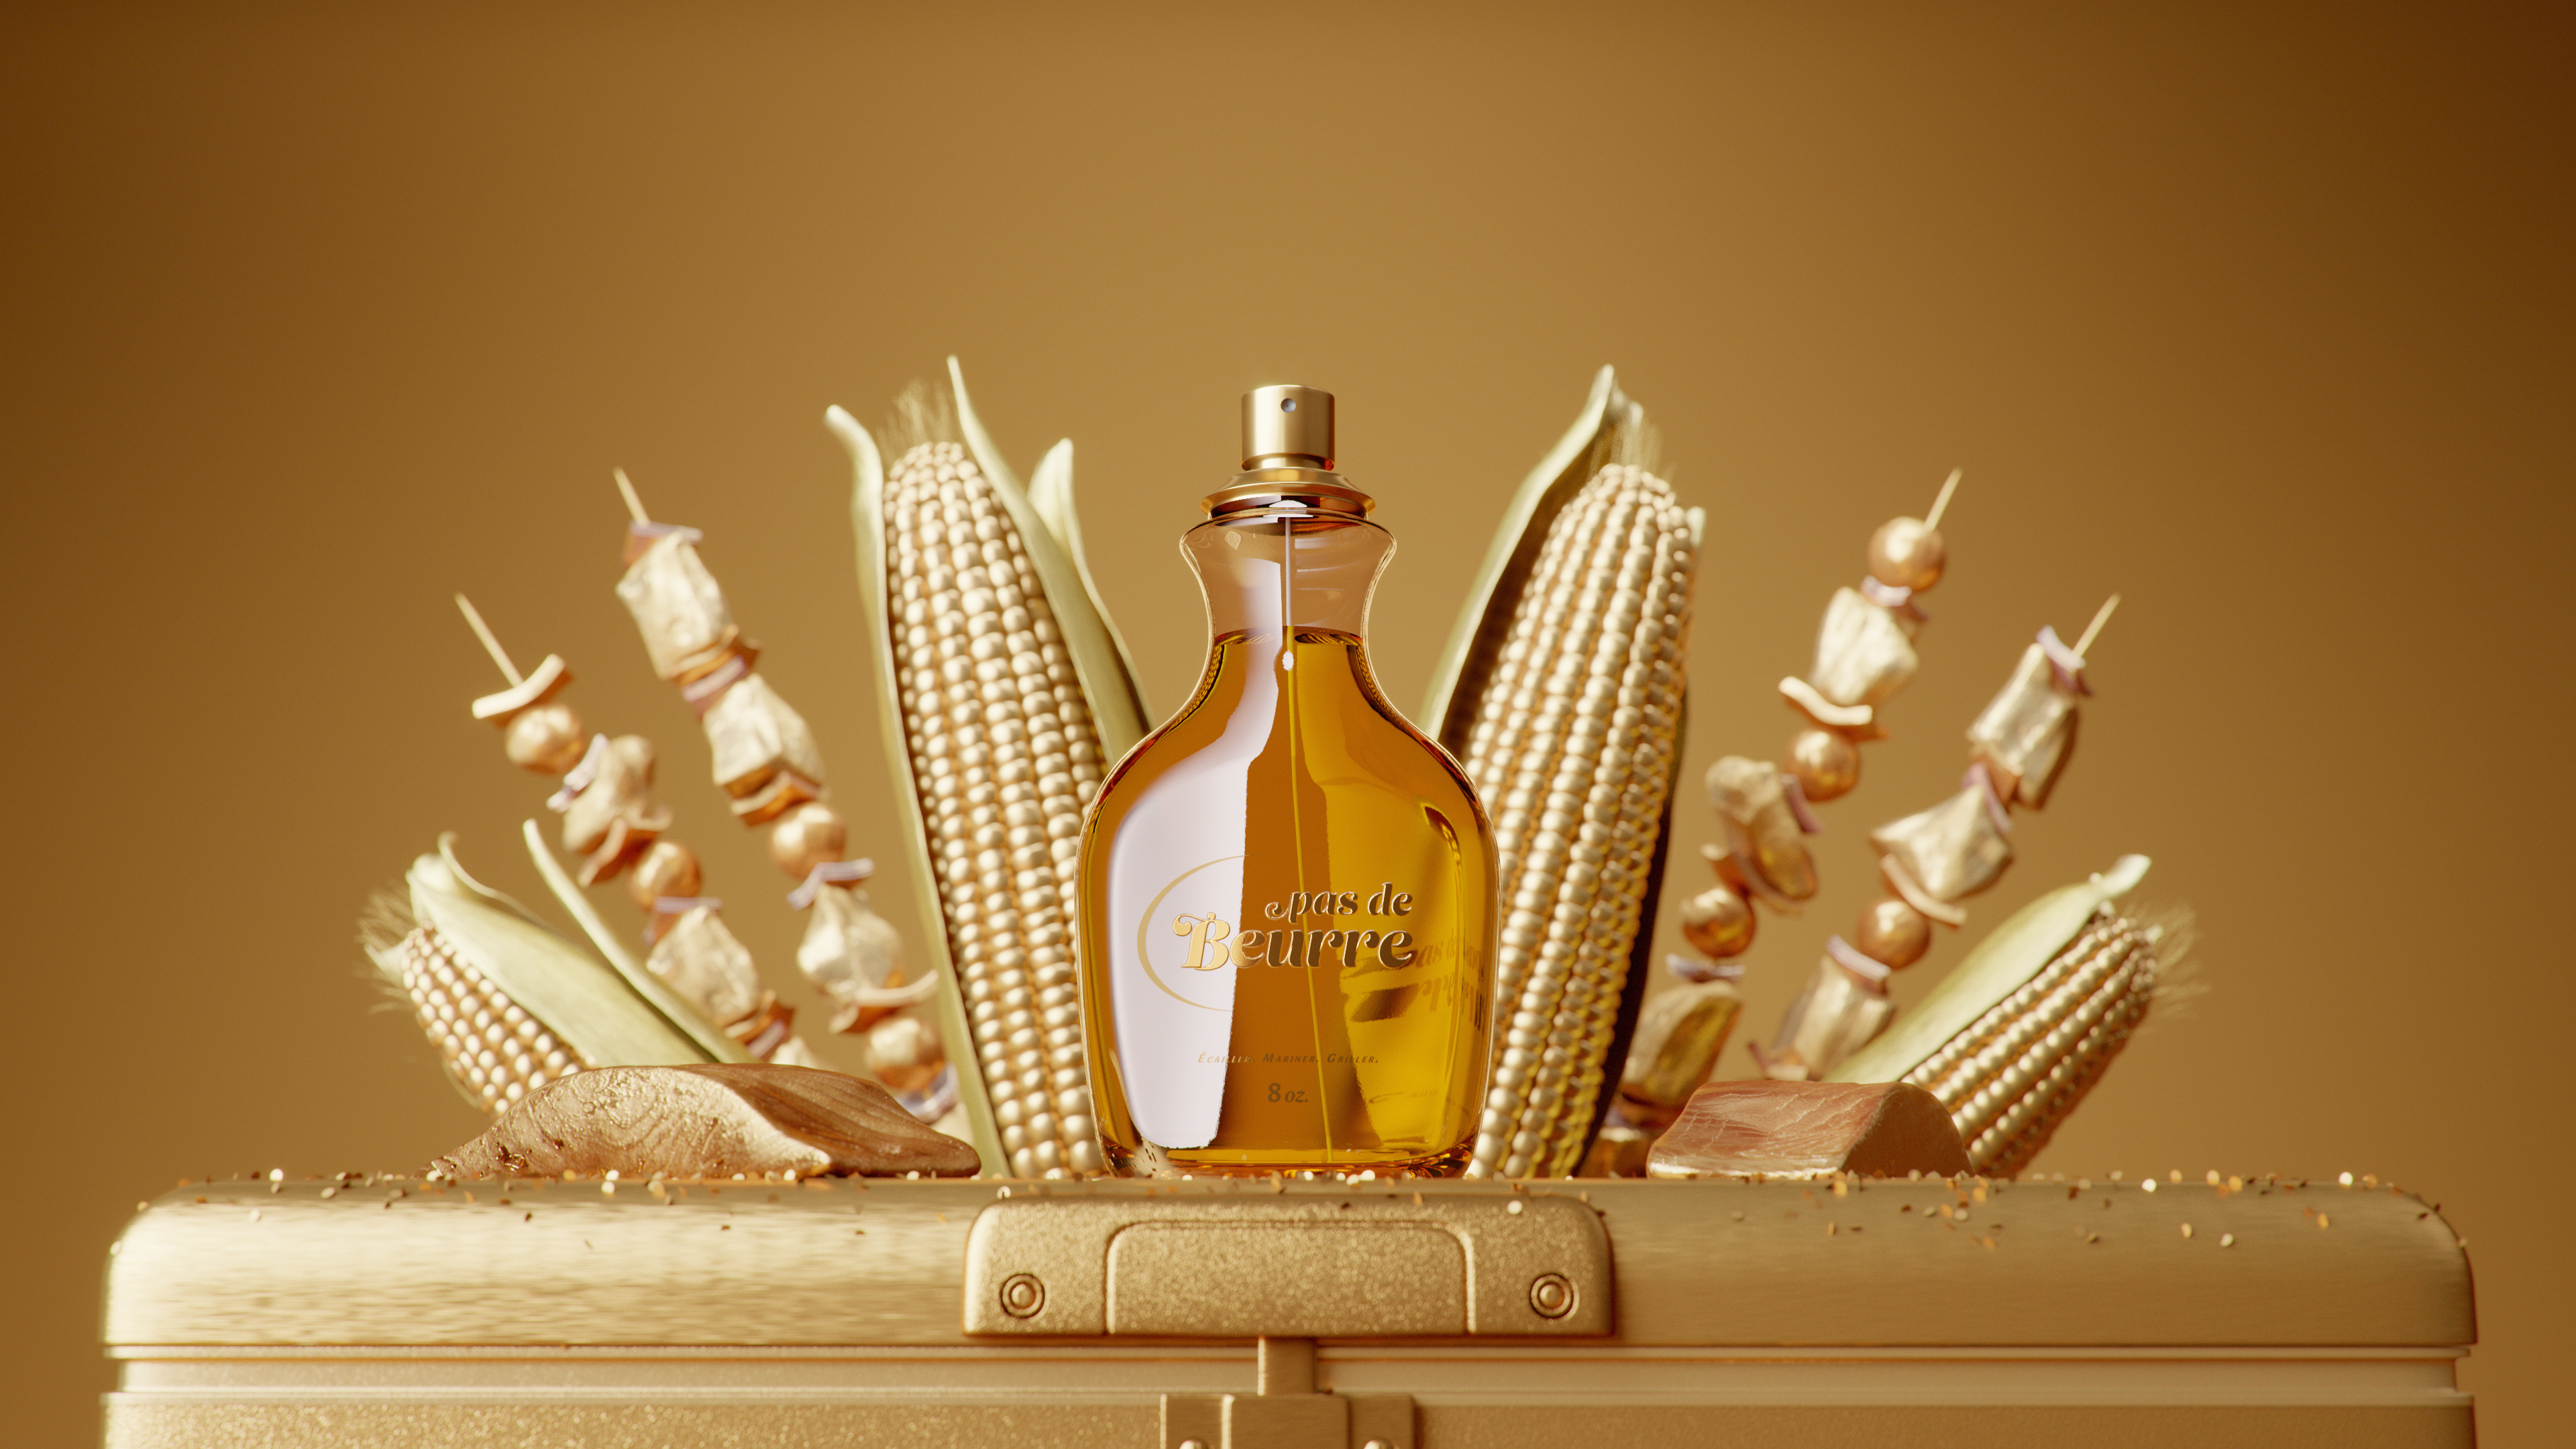 Golden perfume in front of gold-dipped meat and vegetables